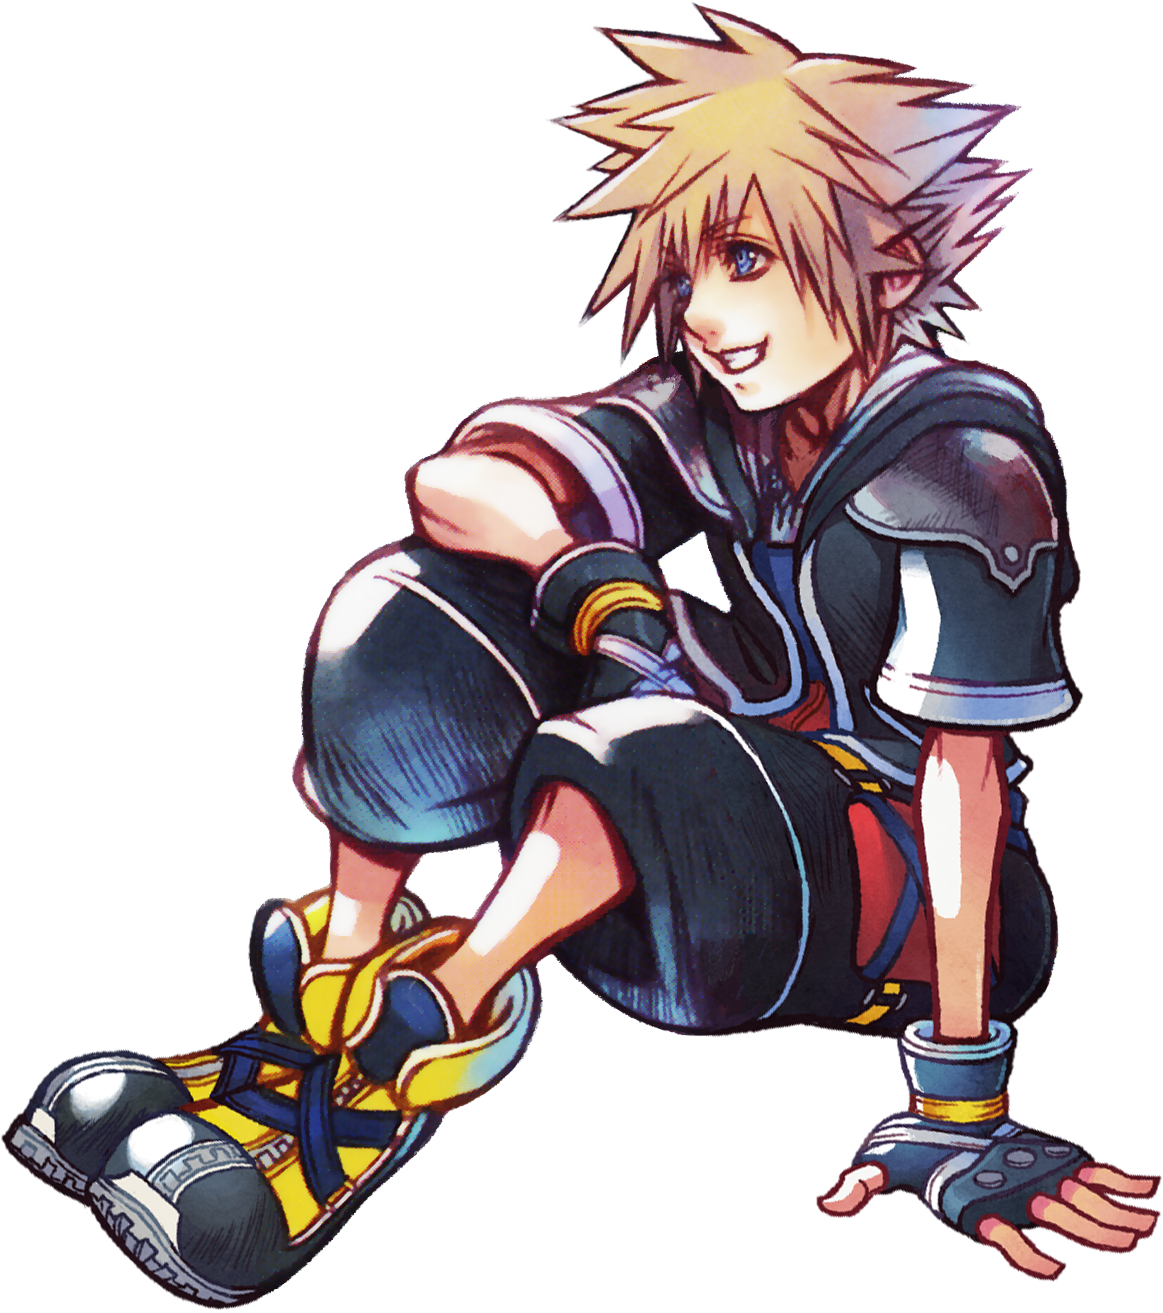 Sora Kingdom Hearts Image 745376: A Variety Of Renders From The Khx 2nd Anniversary. I